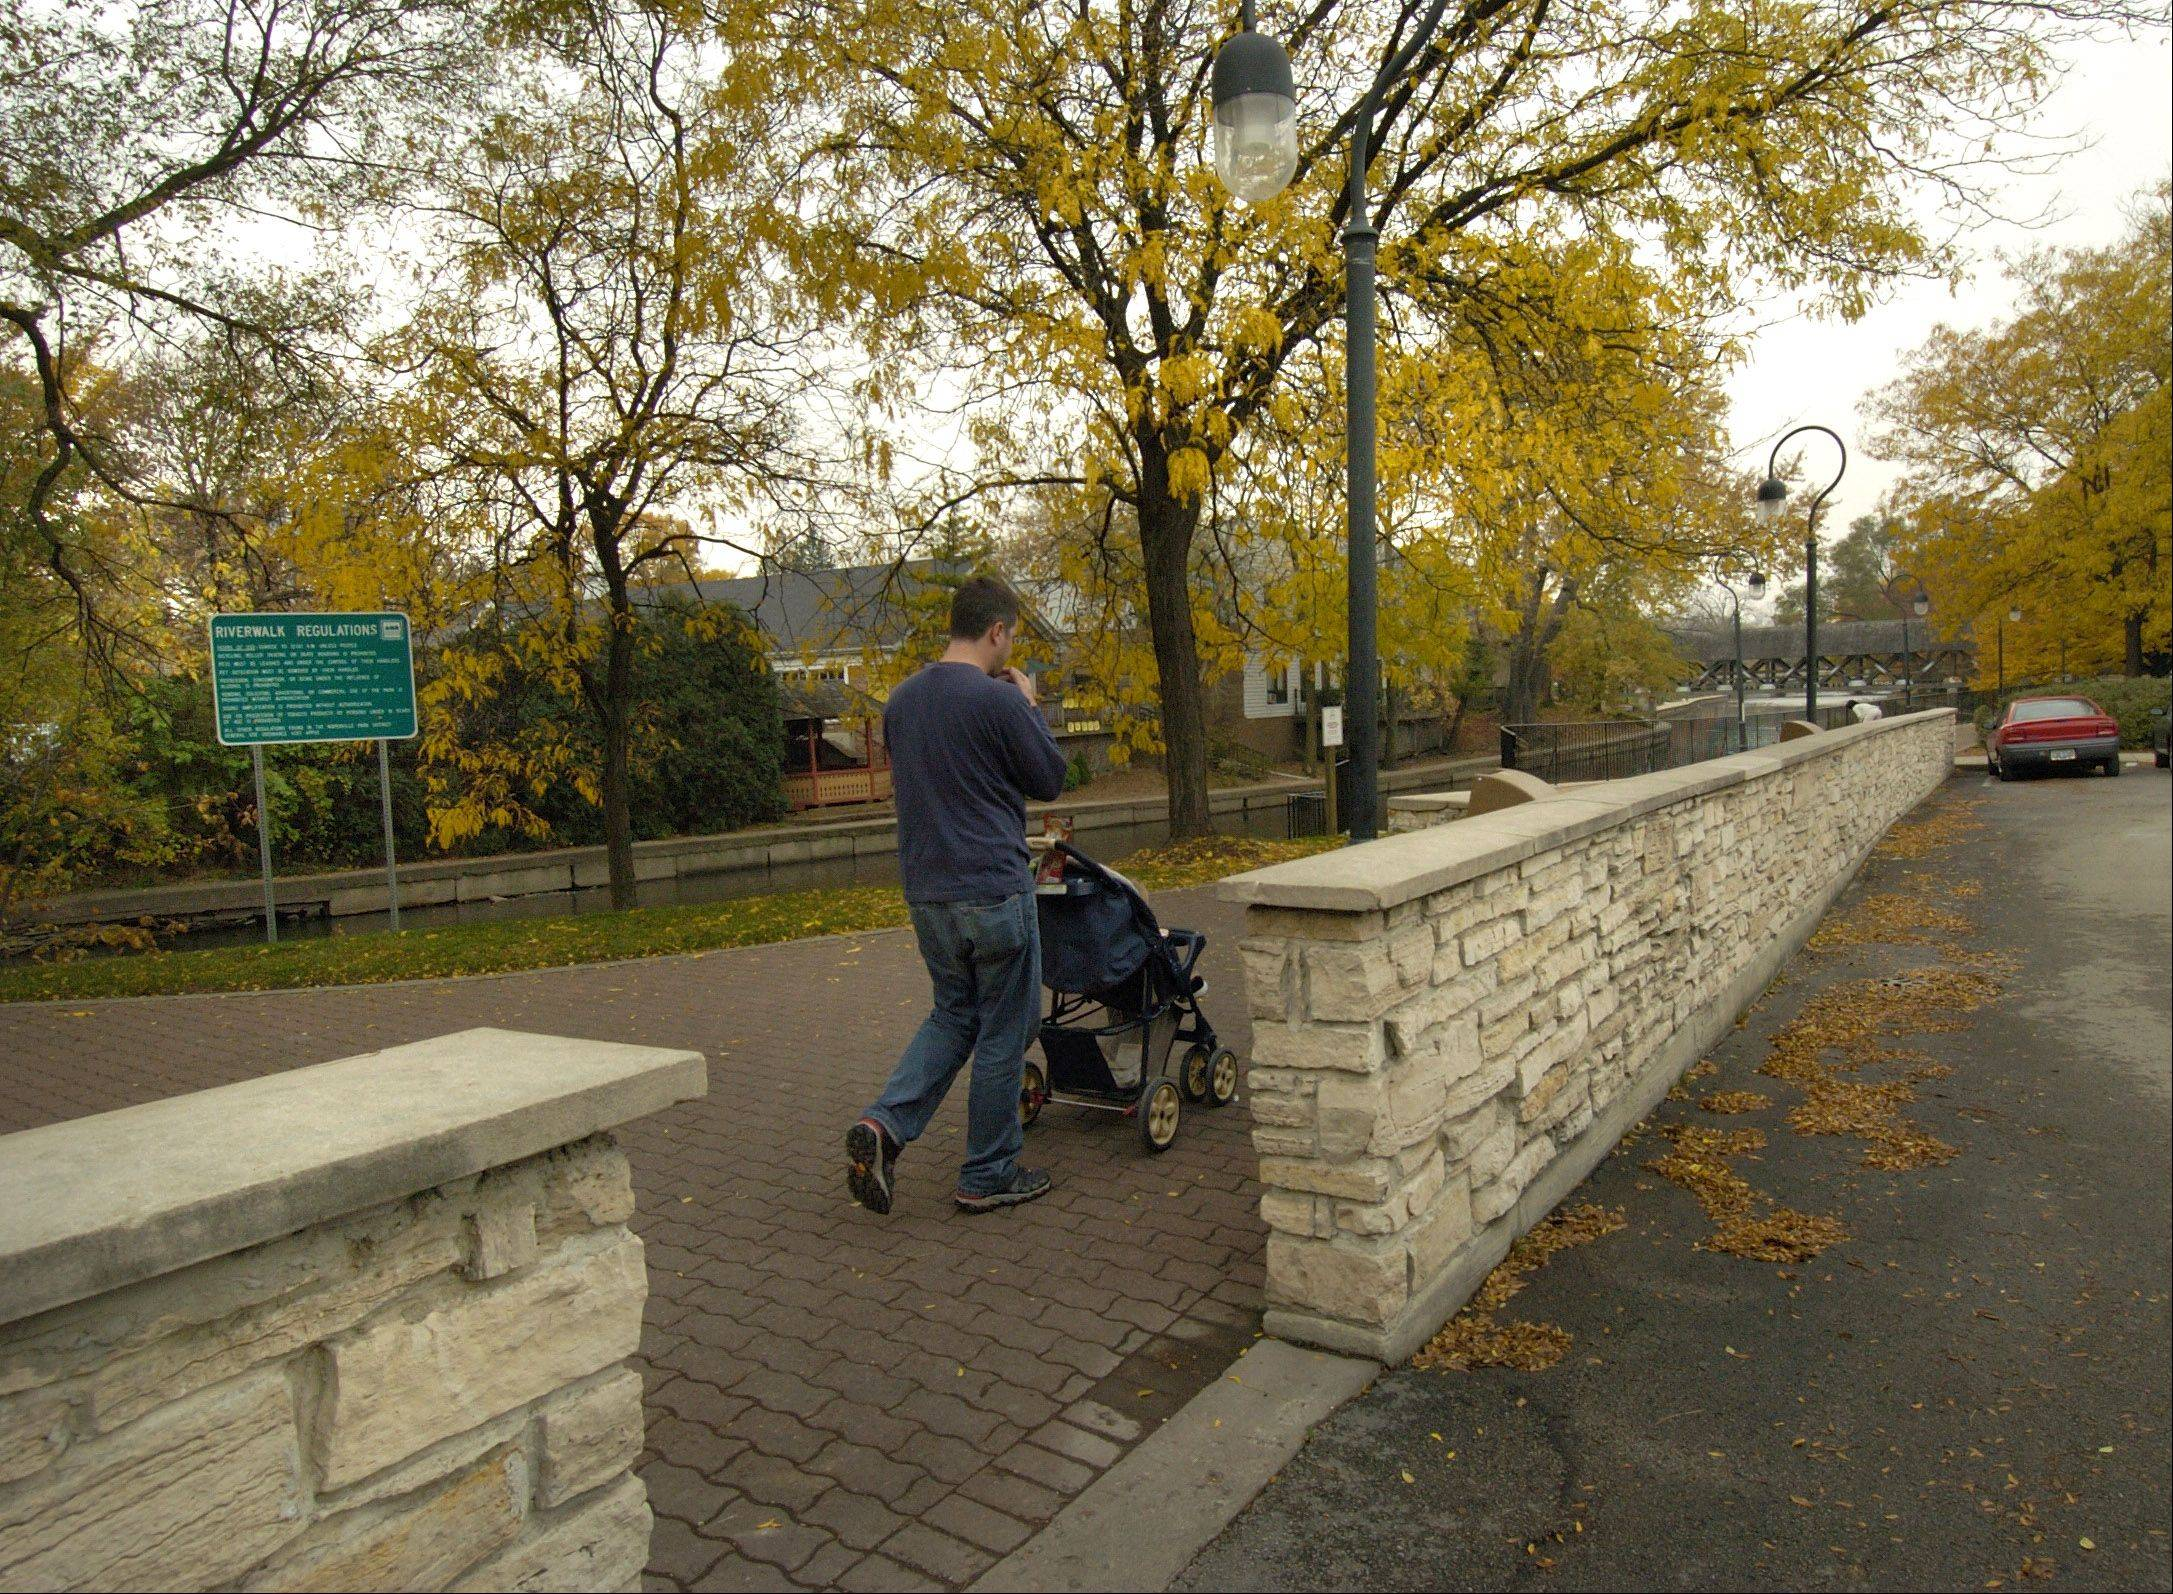 The 1.75-mile Naperville Riverwalk is one of the amenities highlighted by a Kiplinger magazine report that named Naperville the top city in the nation in which to retire early.